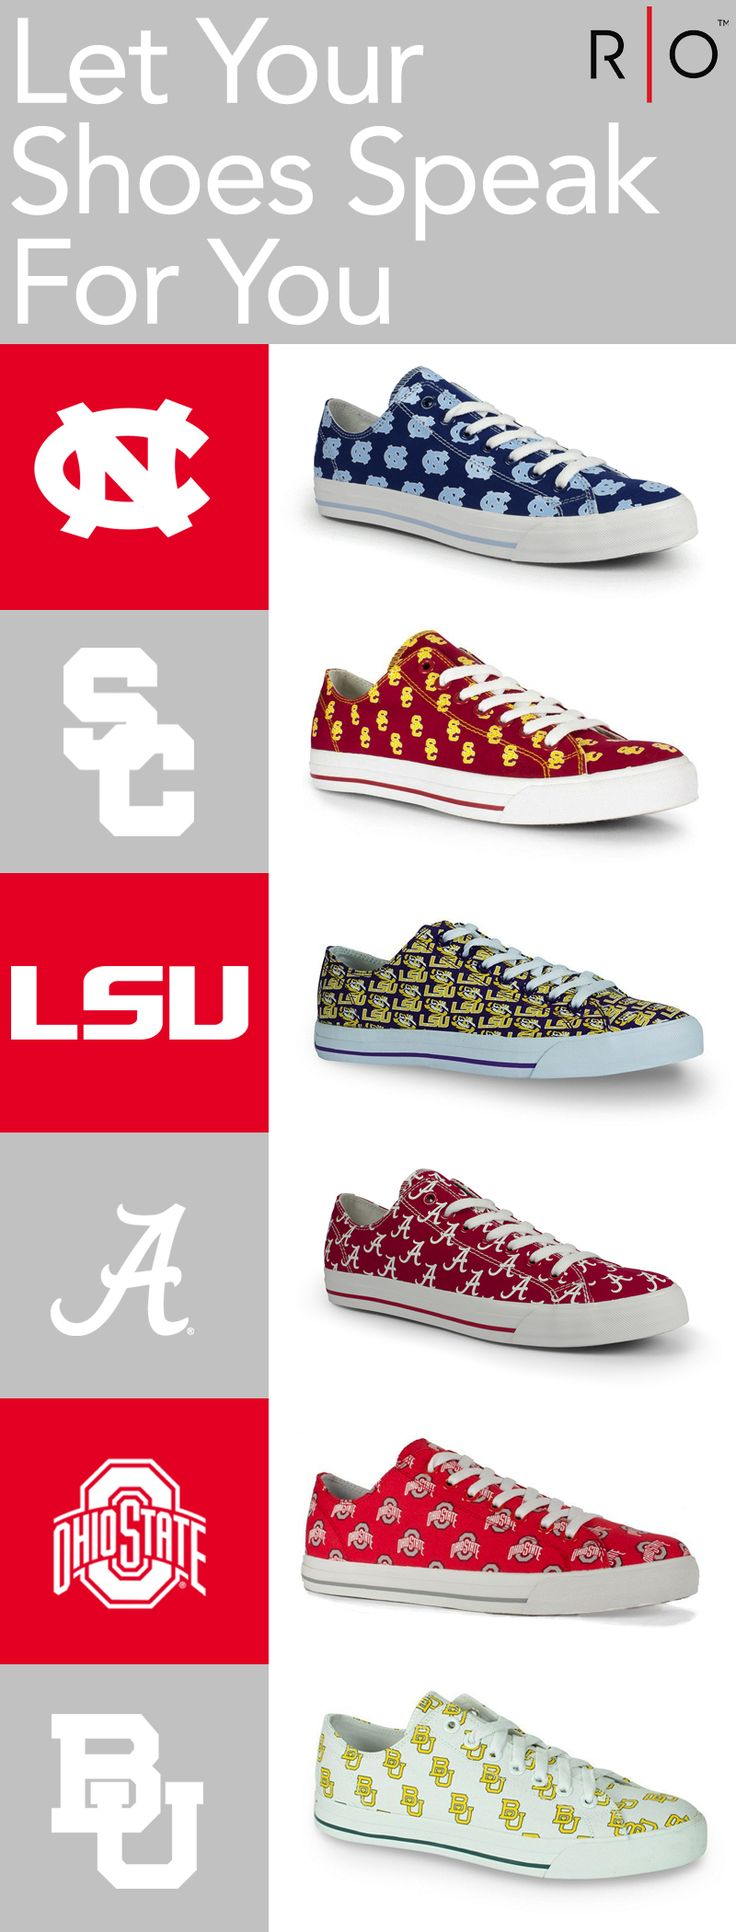 Row One offers a unique line of footwear that allows fans to show their loyalty to their favorite teams and schools.    https://www.rowonebrands.com/products/ohio-state-university-victory?utm_source=Pinterest&utm_medium=11.5P